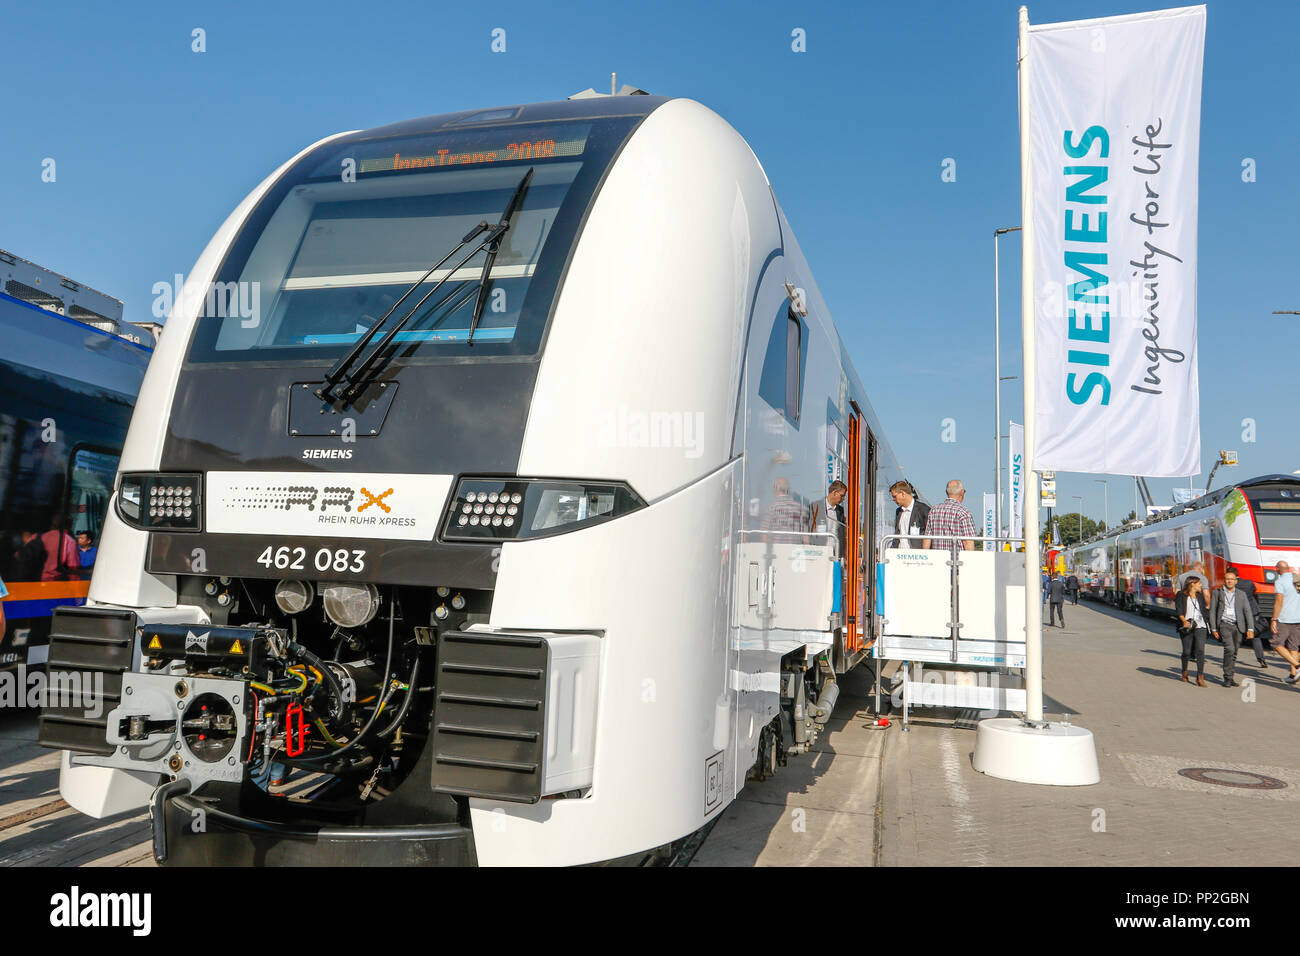 Siemens showcased its new Desiro HC for the Rhein-Ruhr-Express on Innotrans 2018 in Berlin. Stock Photo